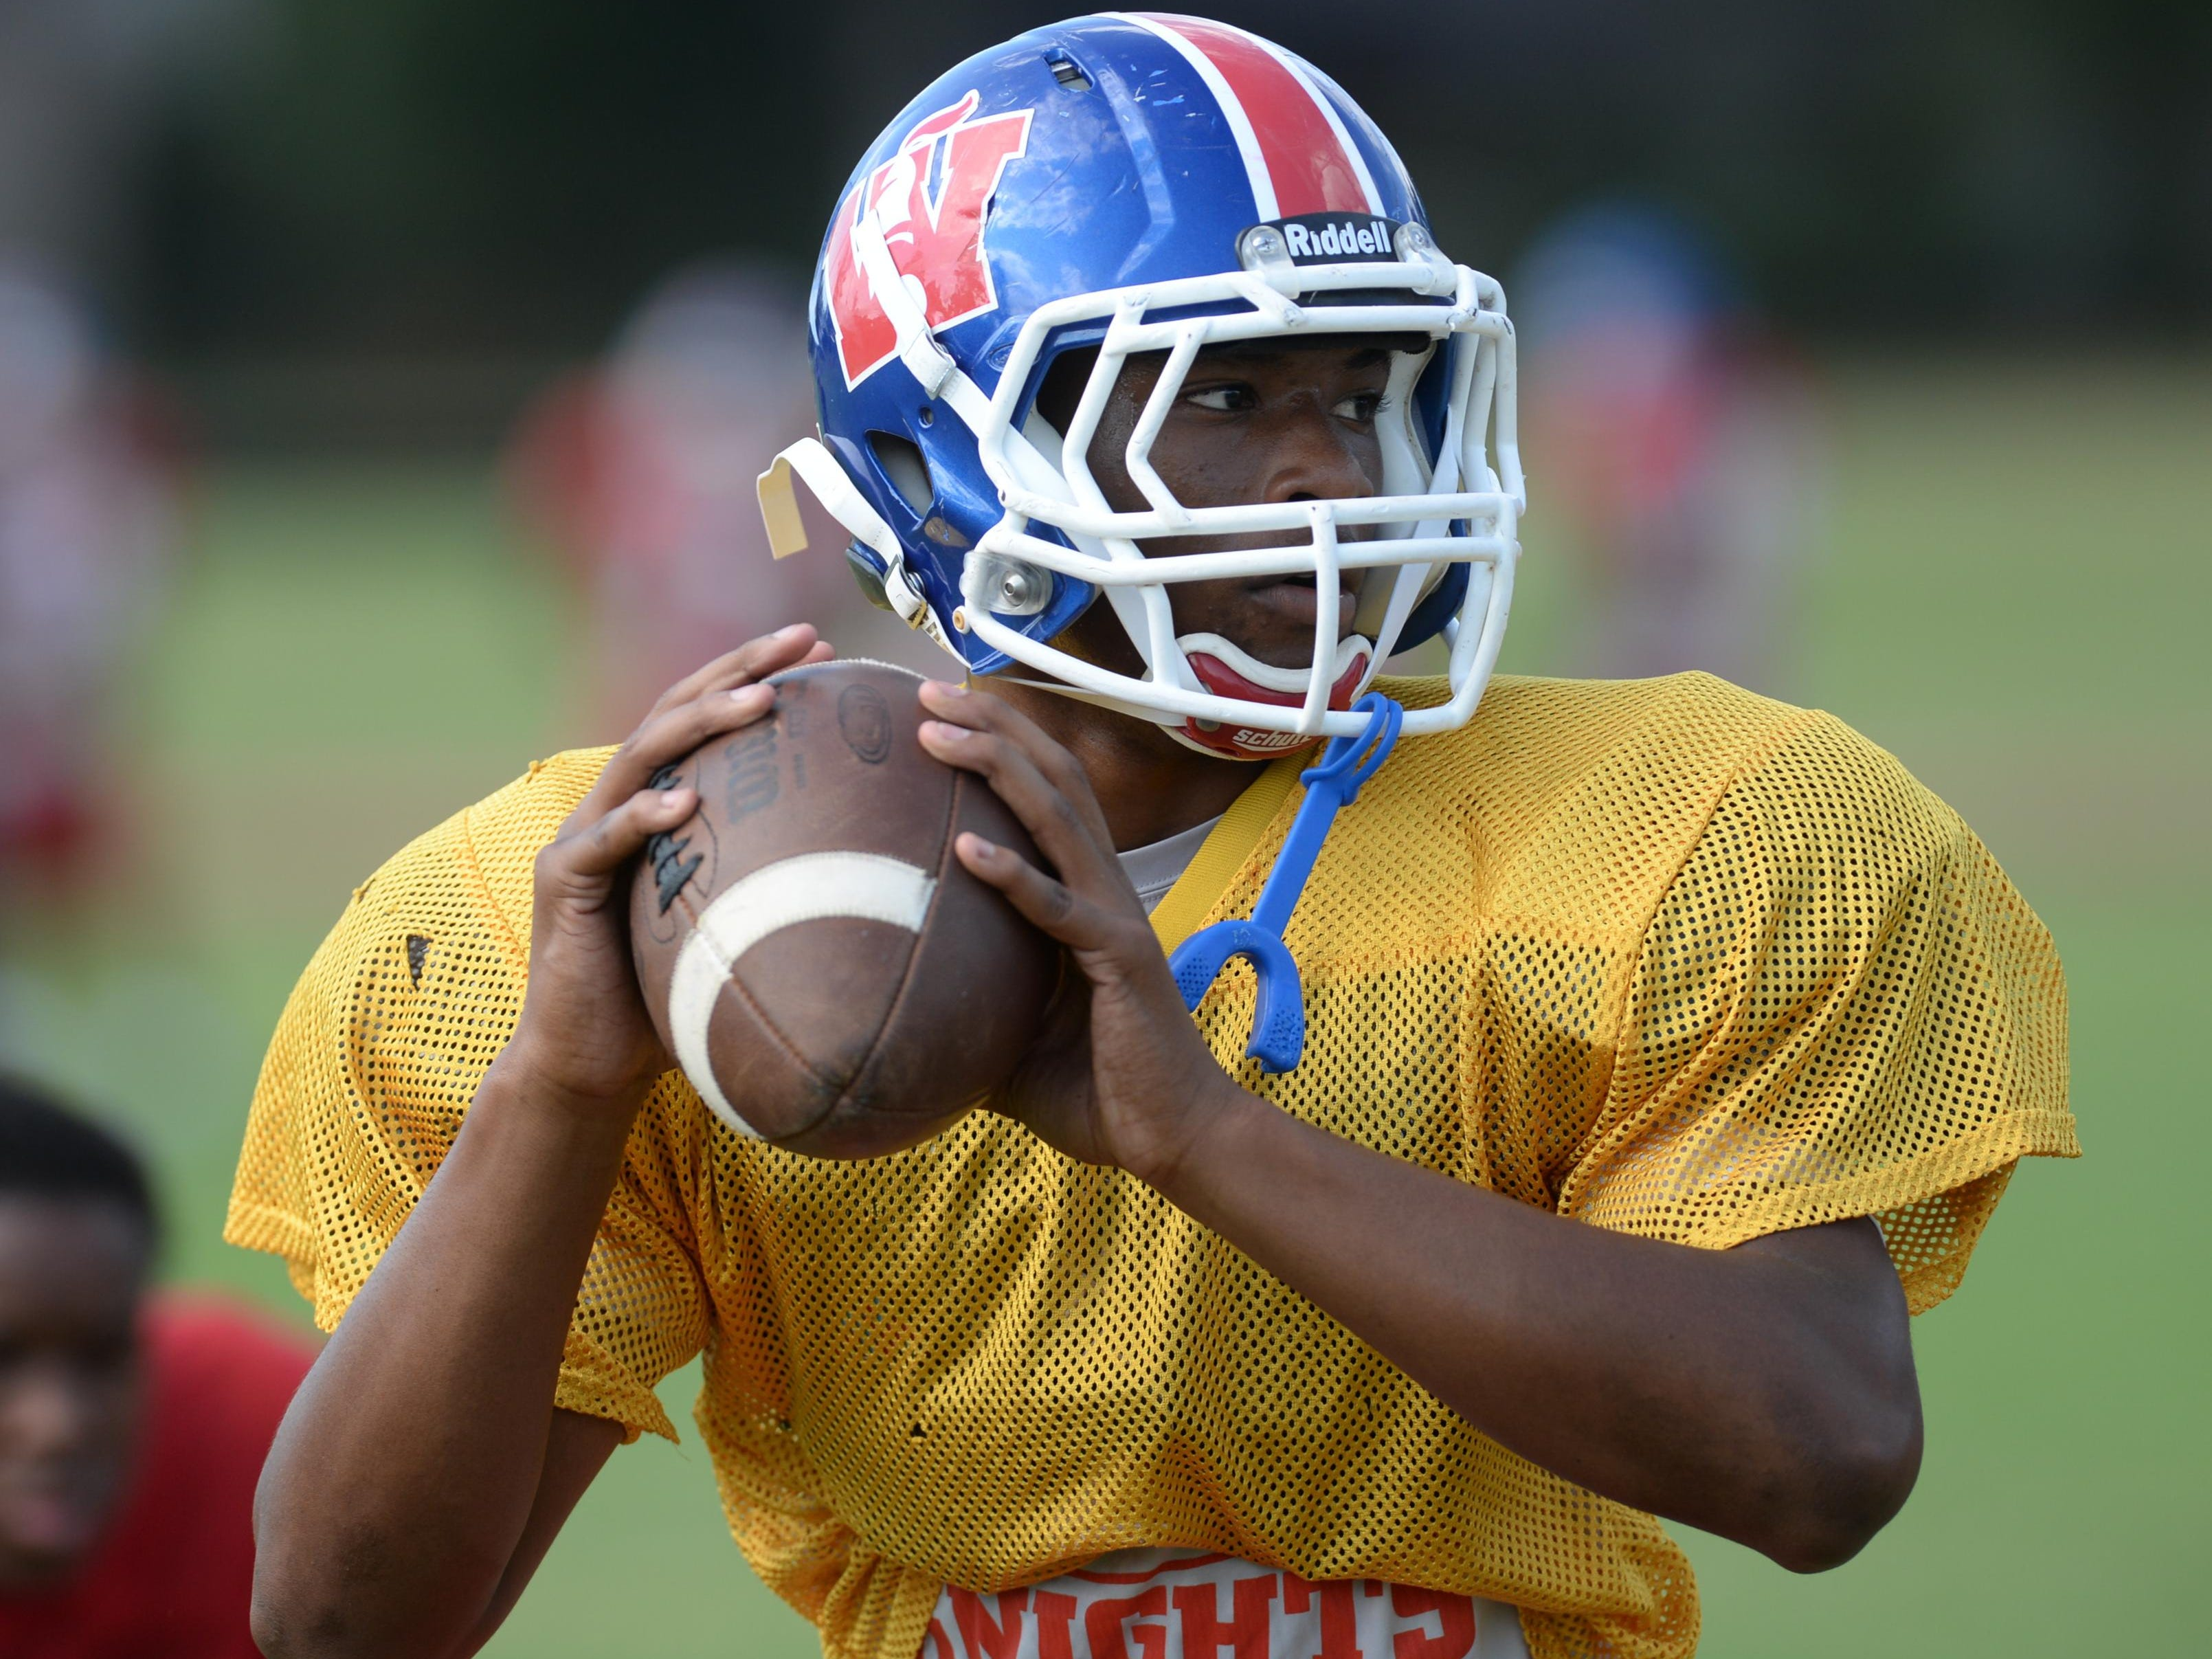 Treveion Youngblood helped Woodlawn get past Northwood on Friday.